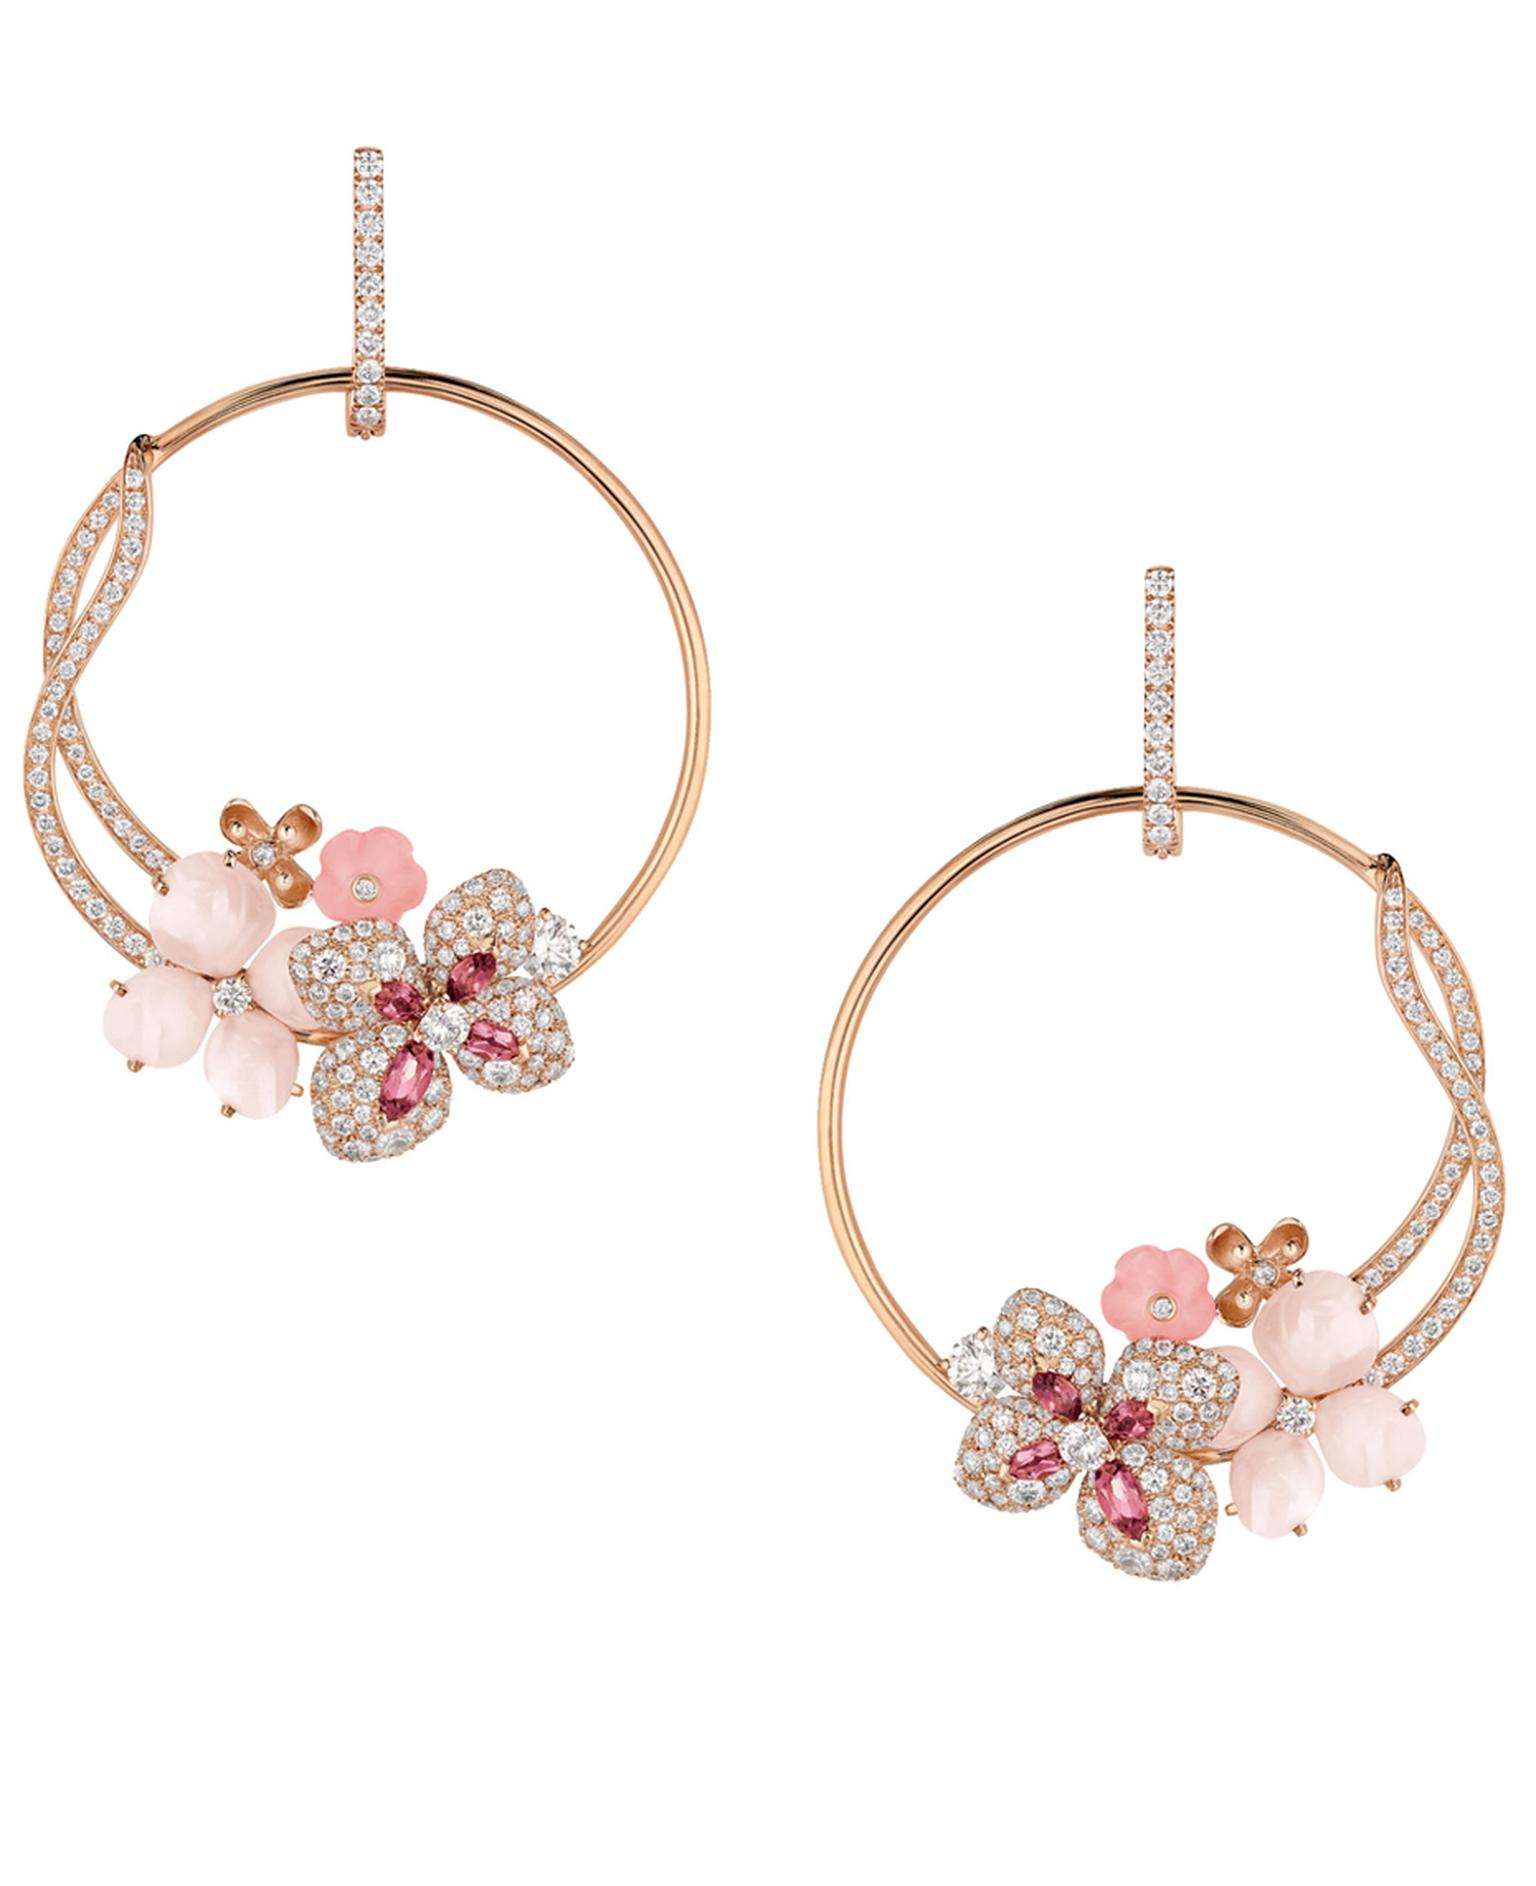 Chaumet Hortensia hoop earrings in pink gold set with angel-skin coral, pink opal, pink tourmalines and diamonds.